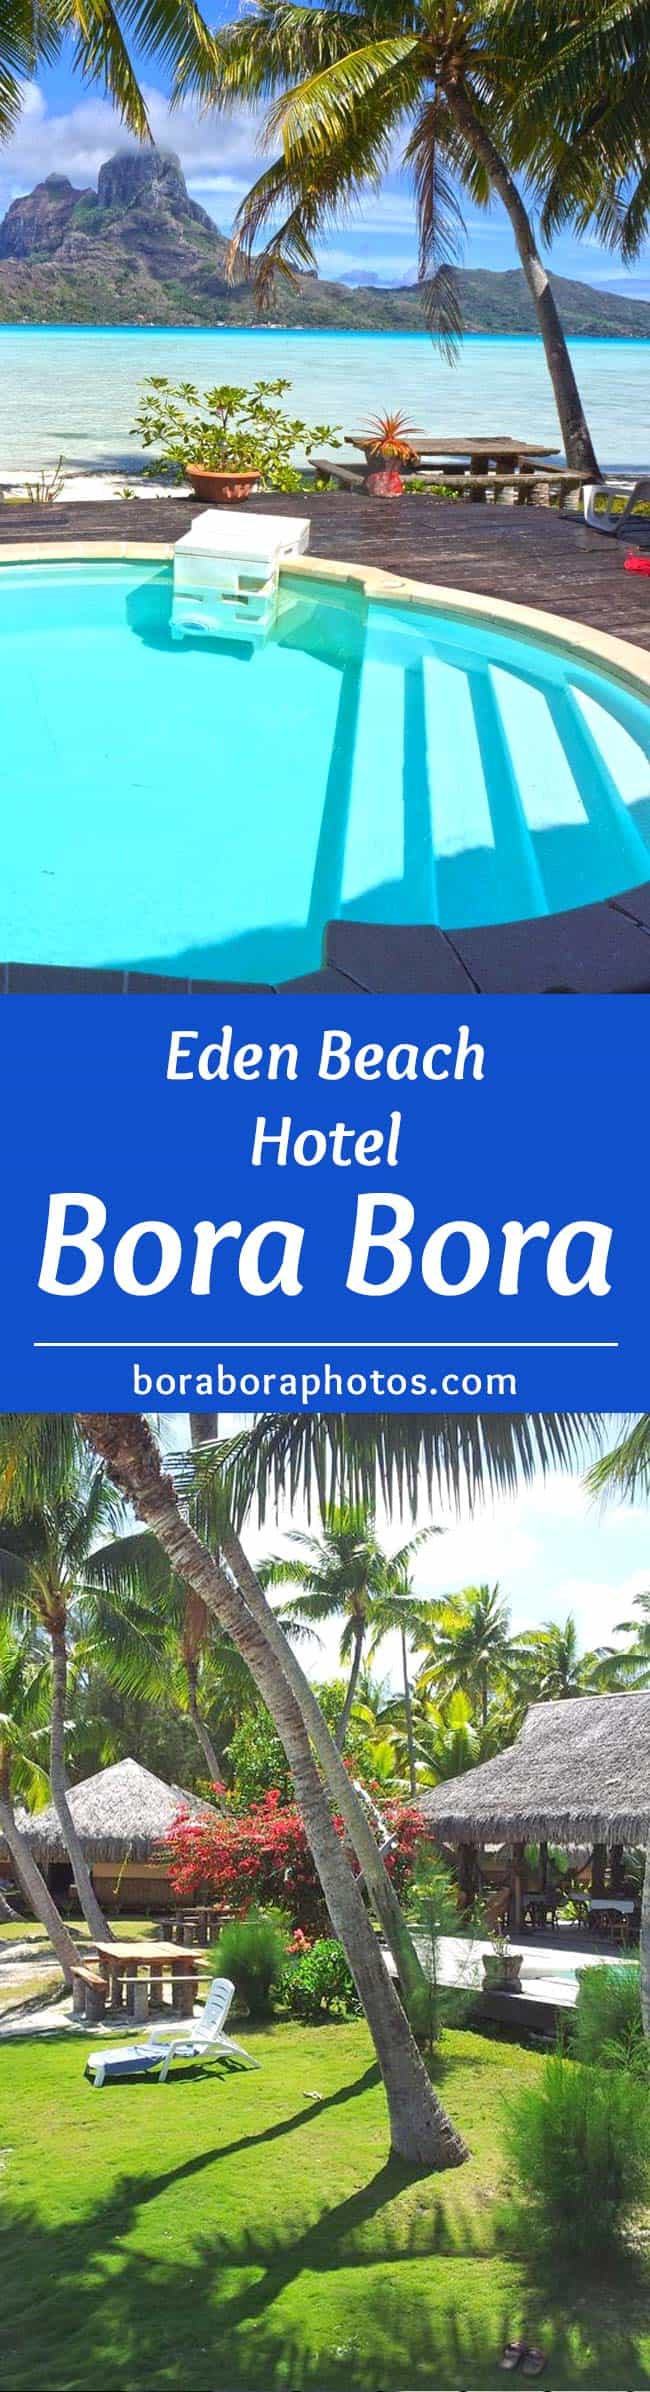 Eden Beach Hotel - Featuring 2 private beaches and spectacular views, this Bora Bora resort is located on a small coral island just a short boat ride from airport and the main island.